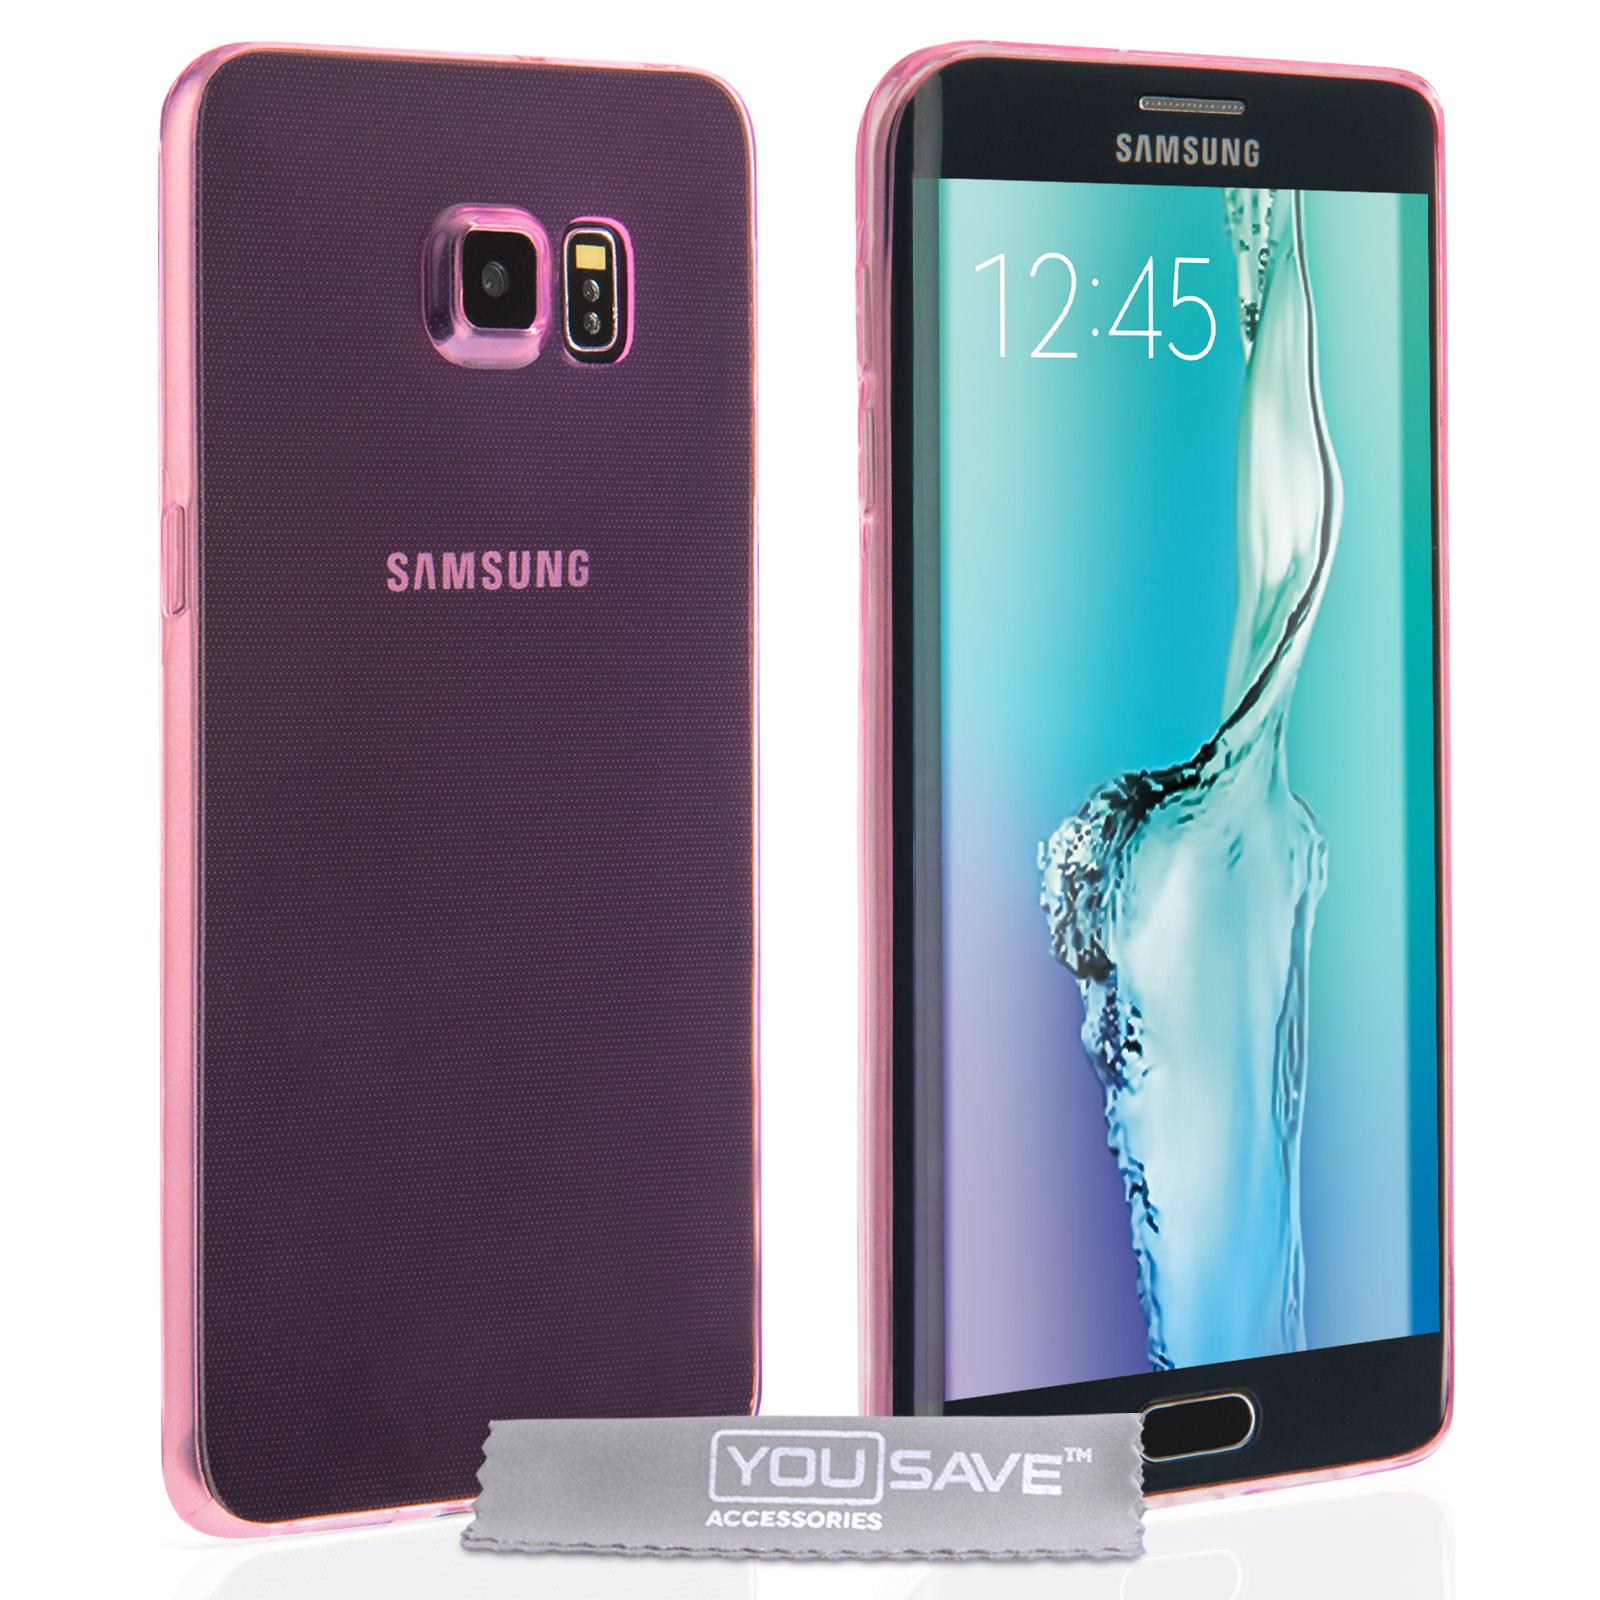 Yousave Accessories Samsung Galaxy S6 Edge Plus Ultra Thin Gel -Pink Case